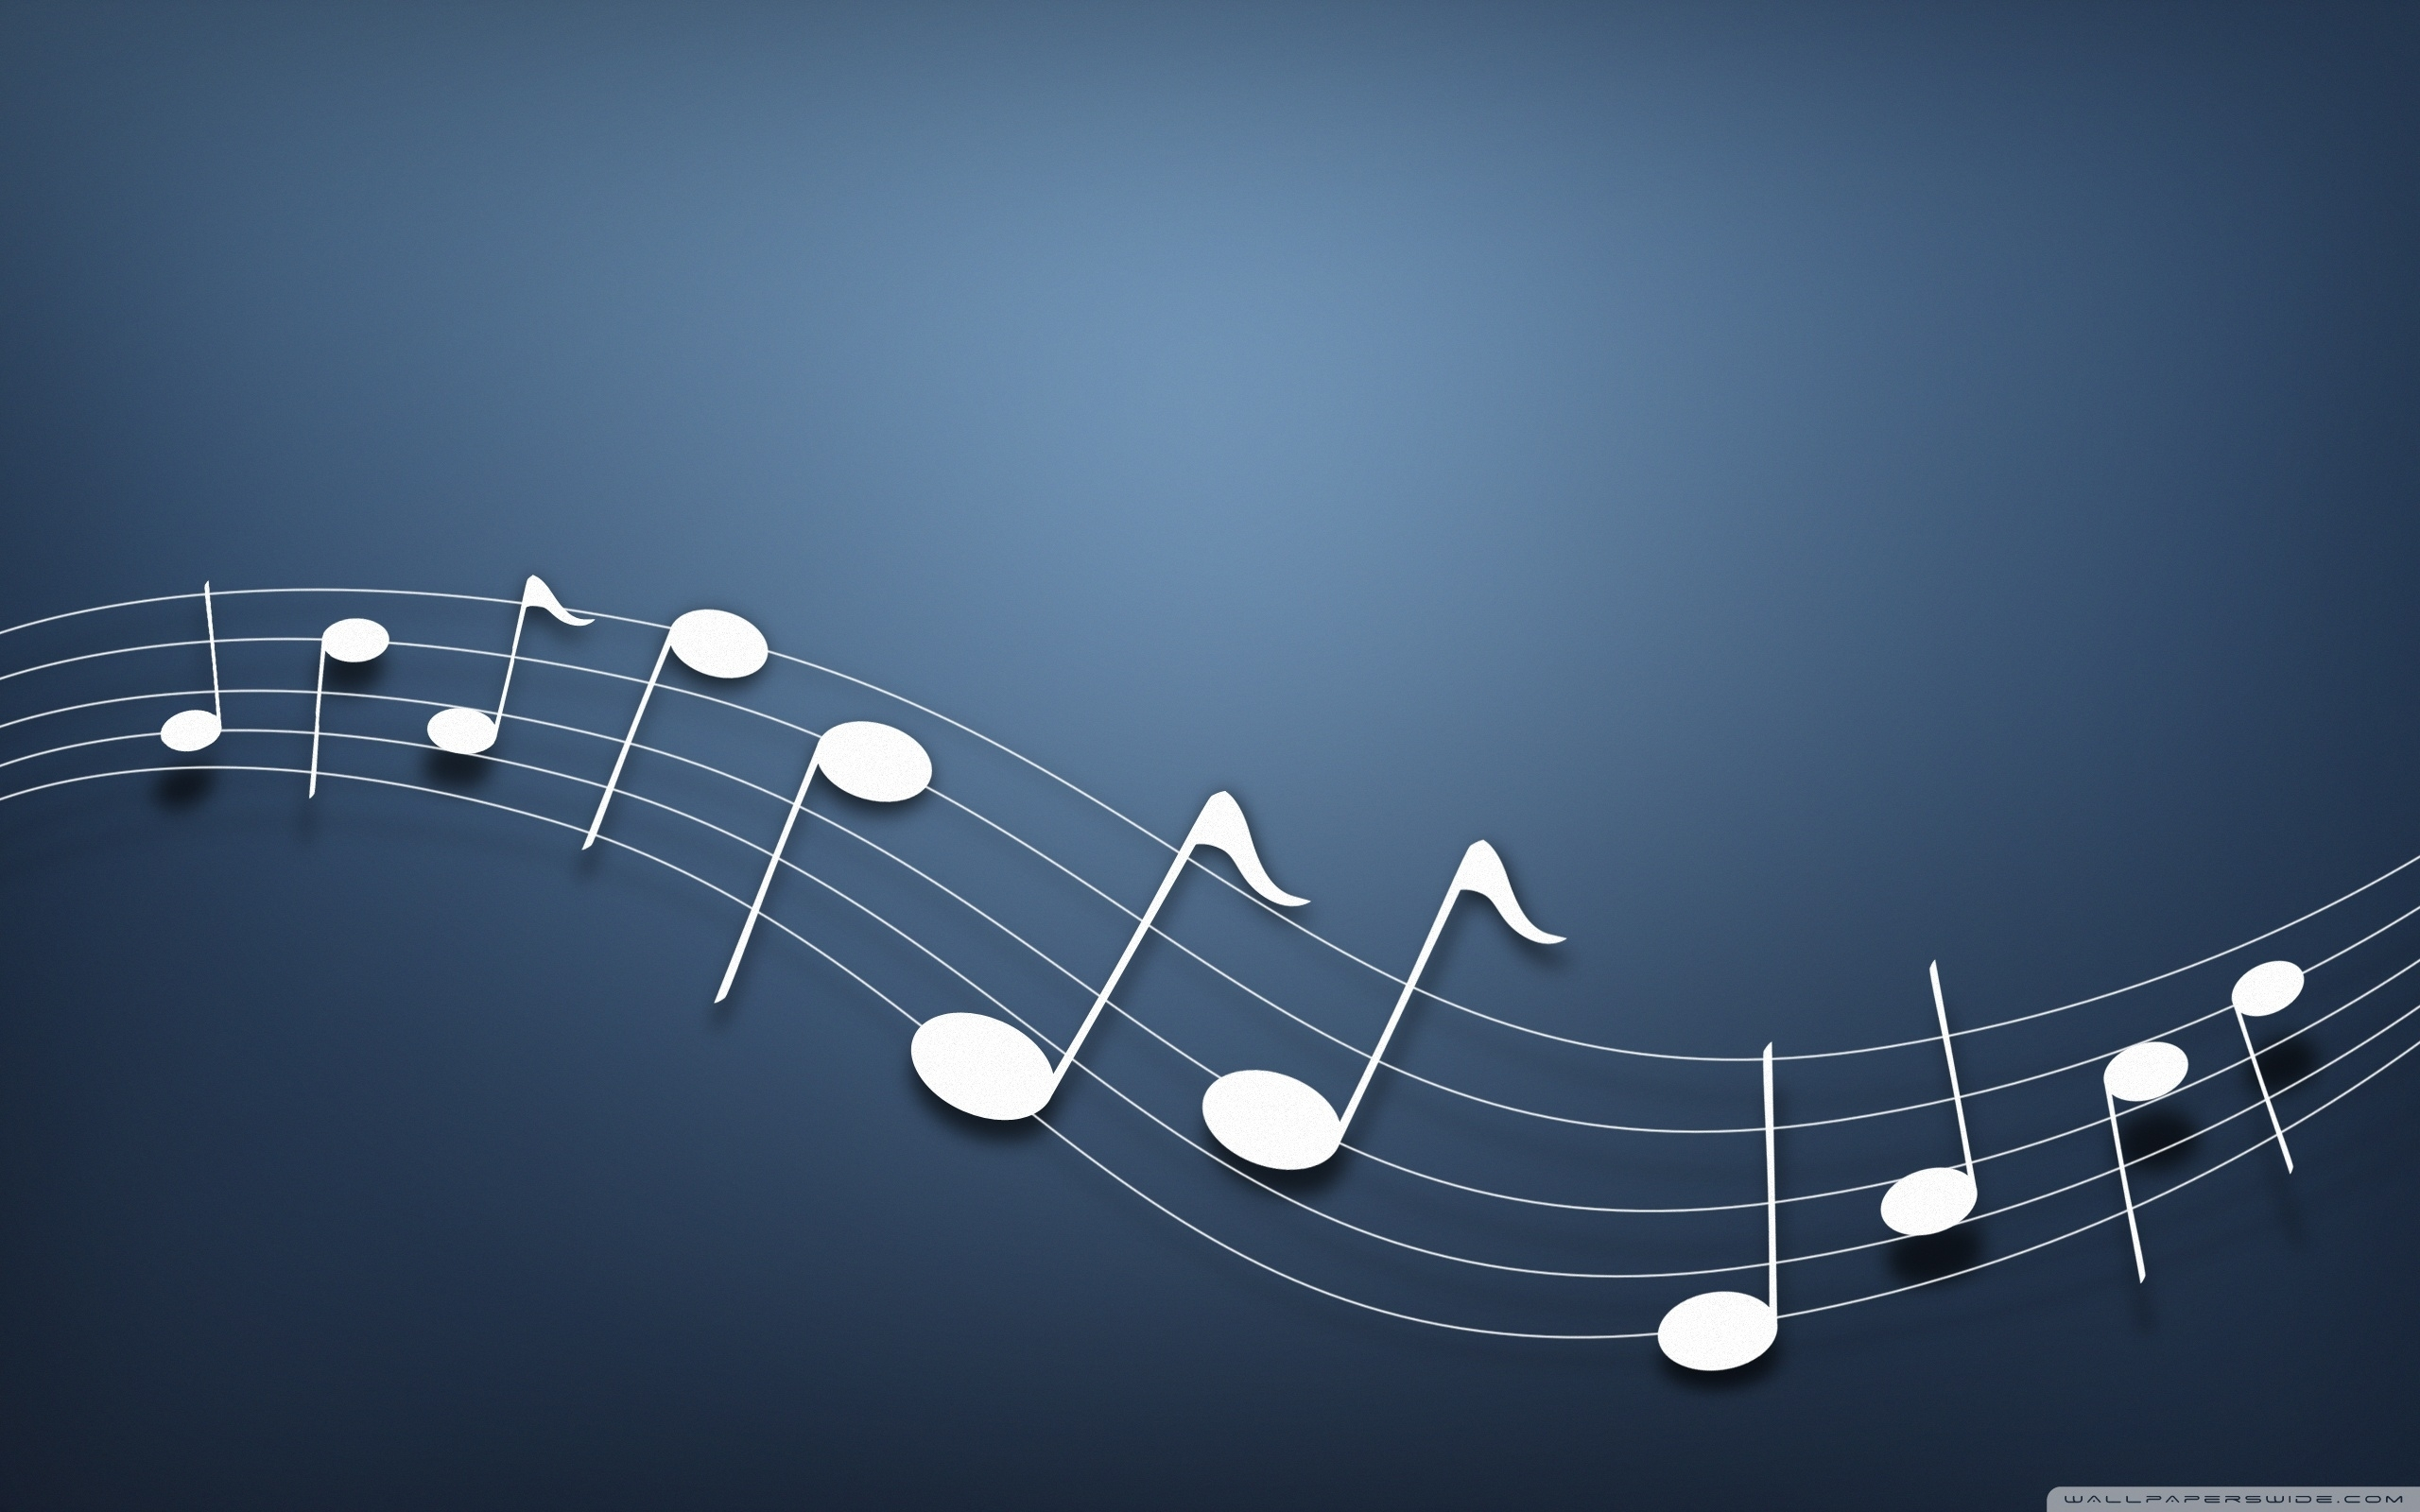 musical notes background | vip wallpaper | hd wallpapers for desktop